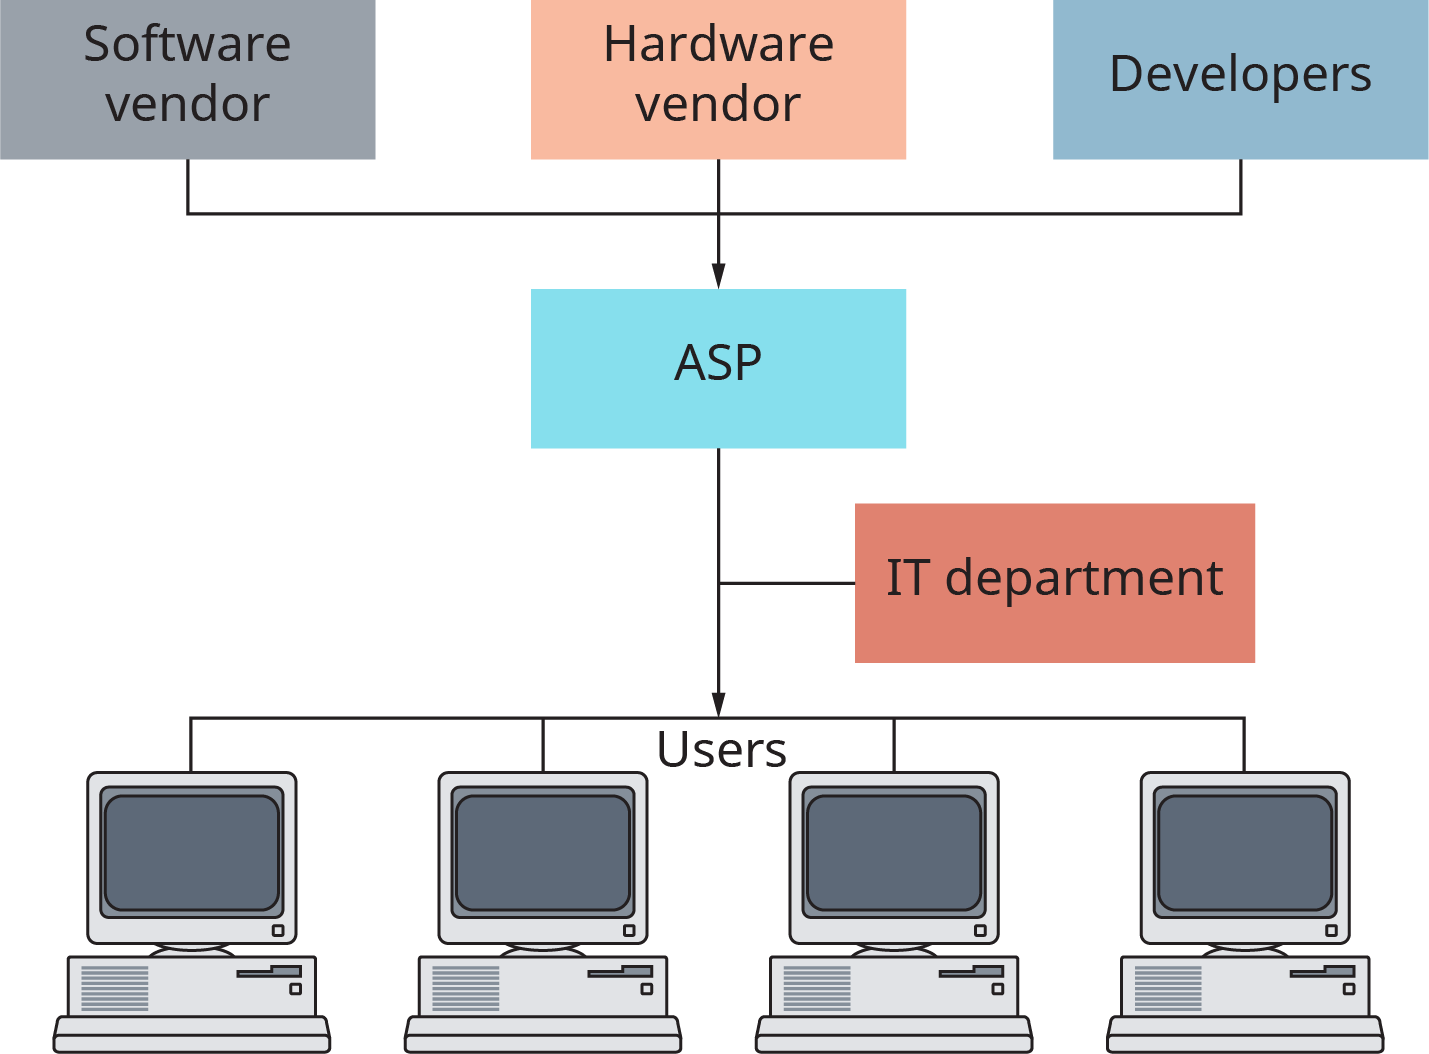 A diagram shows that a software vendor, hardware vendor, and developers all flow into an A S P, which then flows into an audience of users. Between the A S P and the users is the I T department.